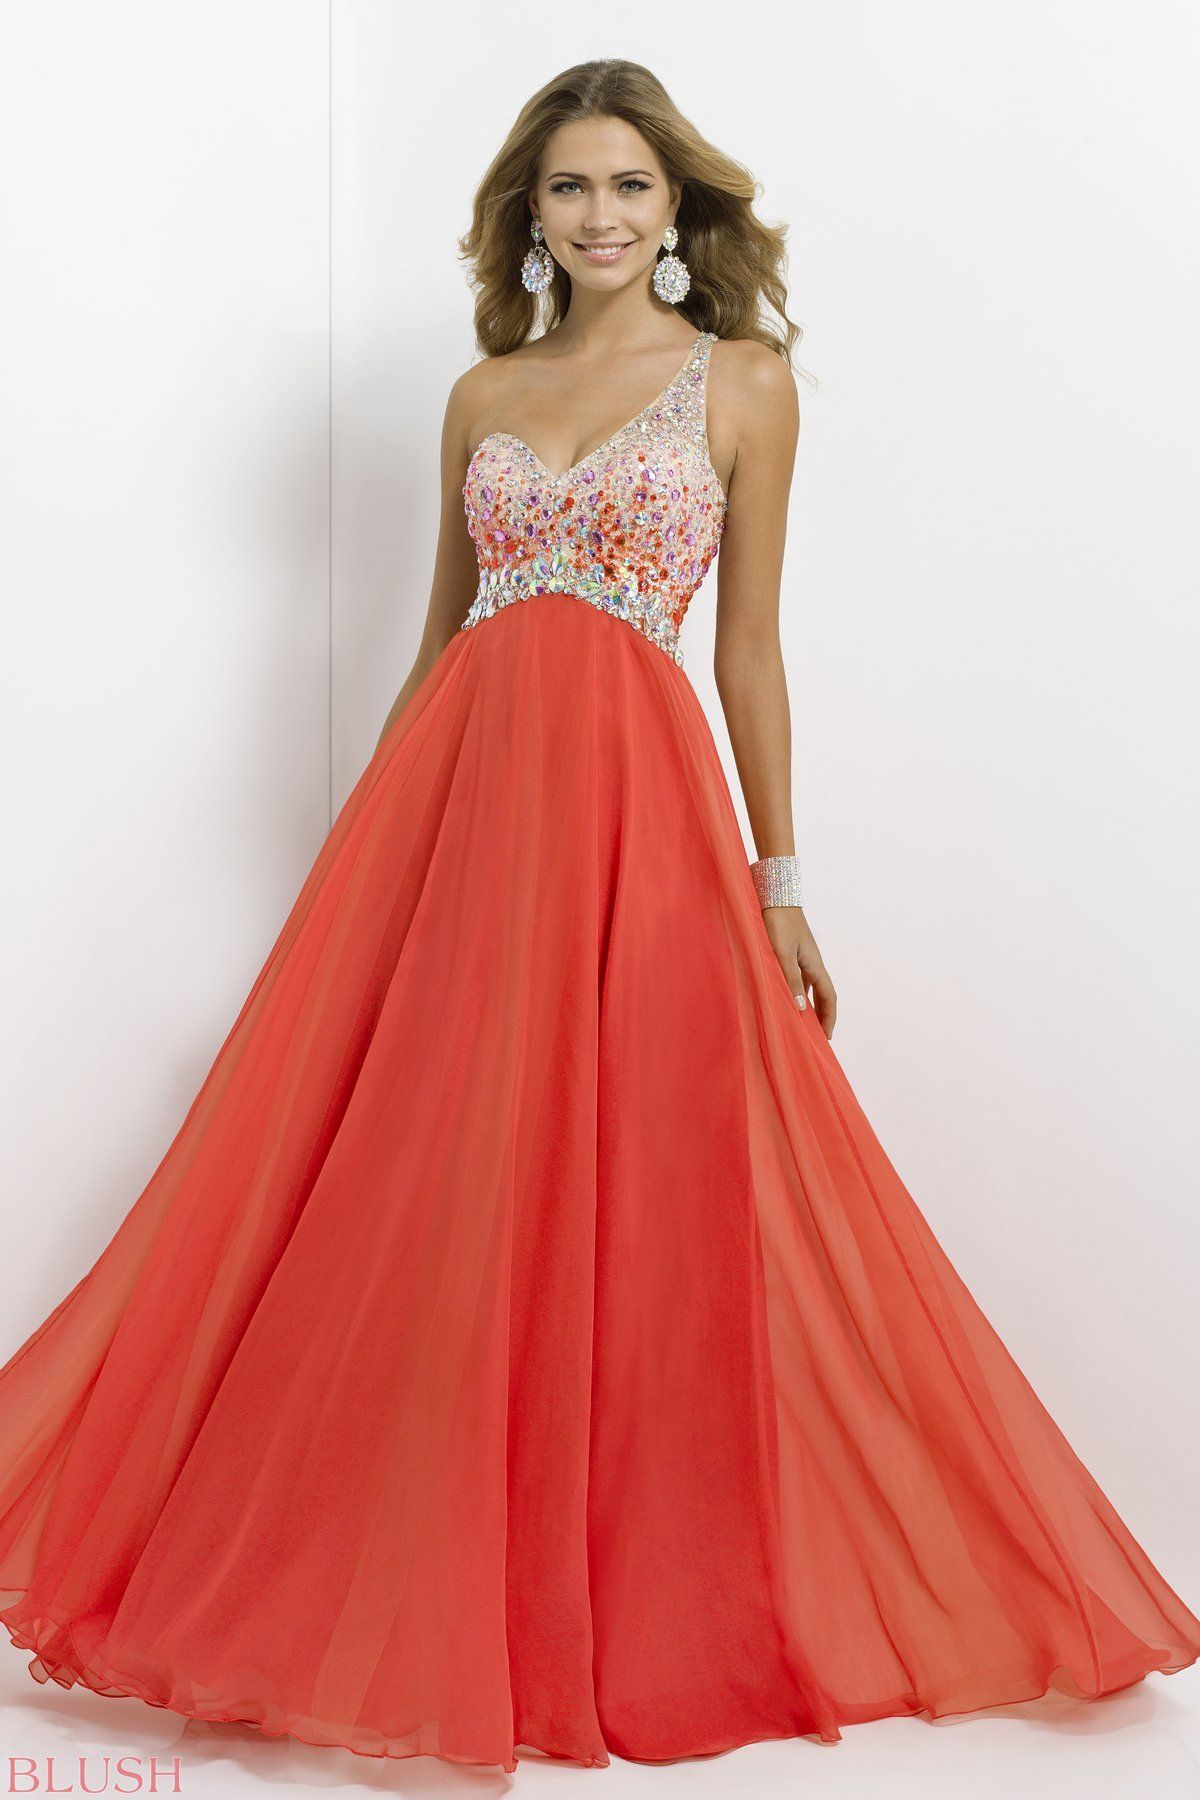 A Line Party One Shoulder Luxurious Style Chiffon Prom Dresses With Beading  Prom Dresses/ Evening Dresses/Wedding Dresses